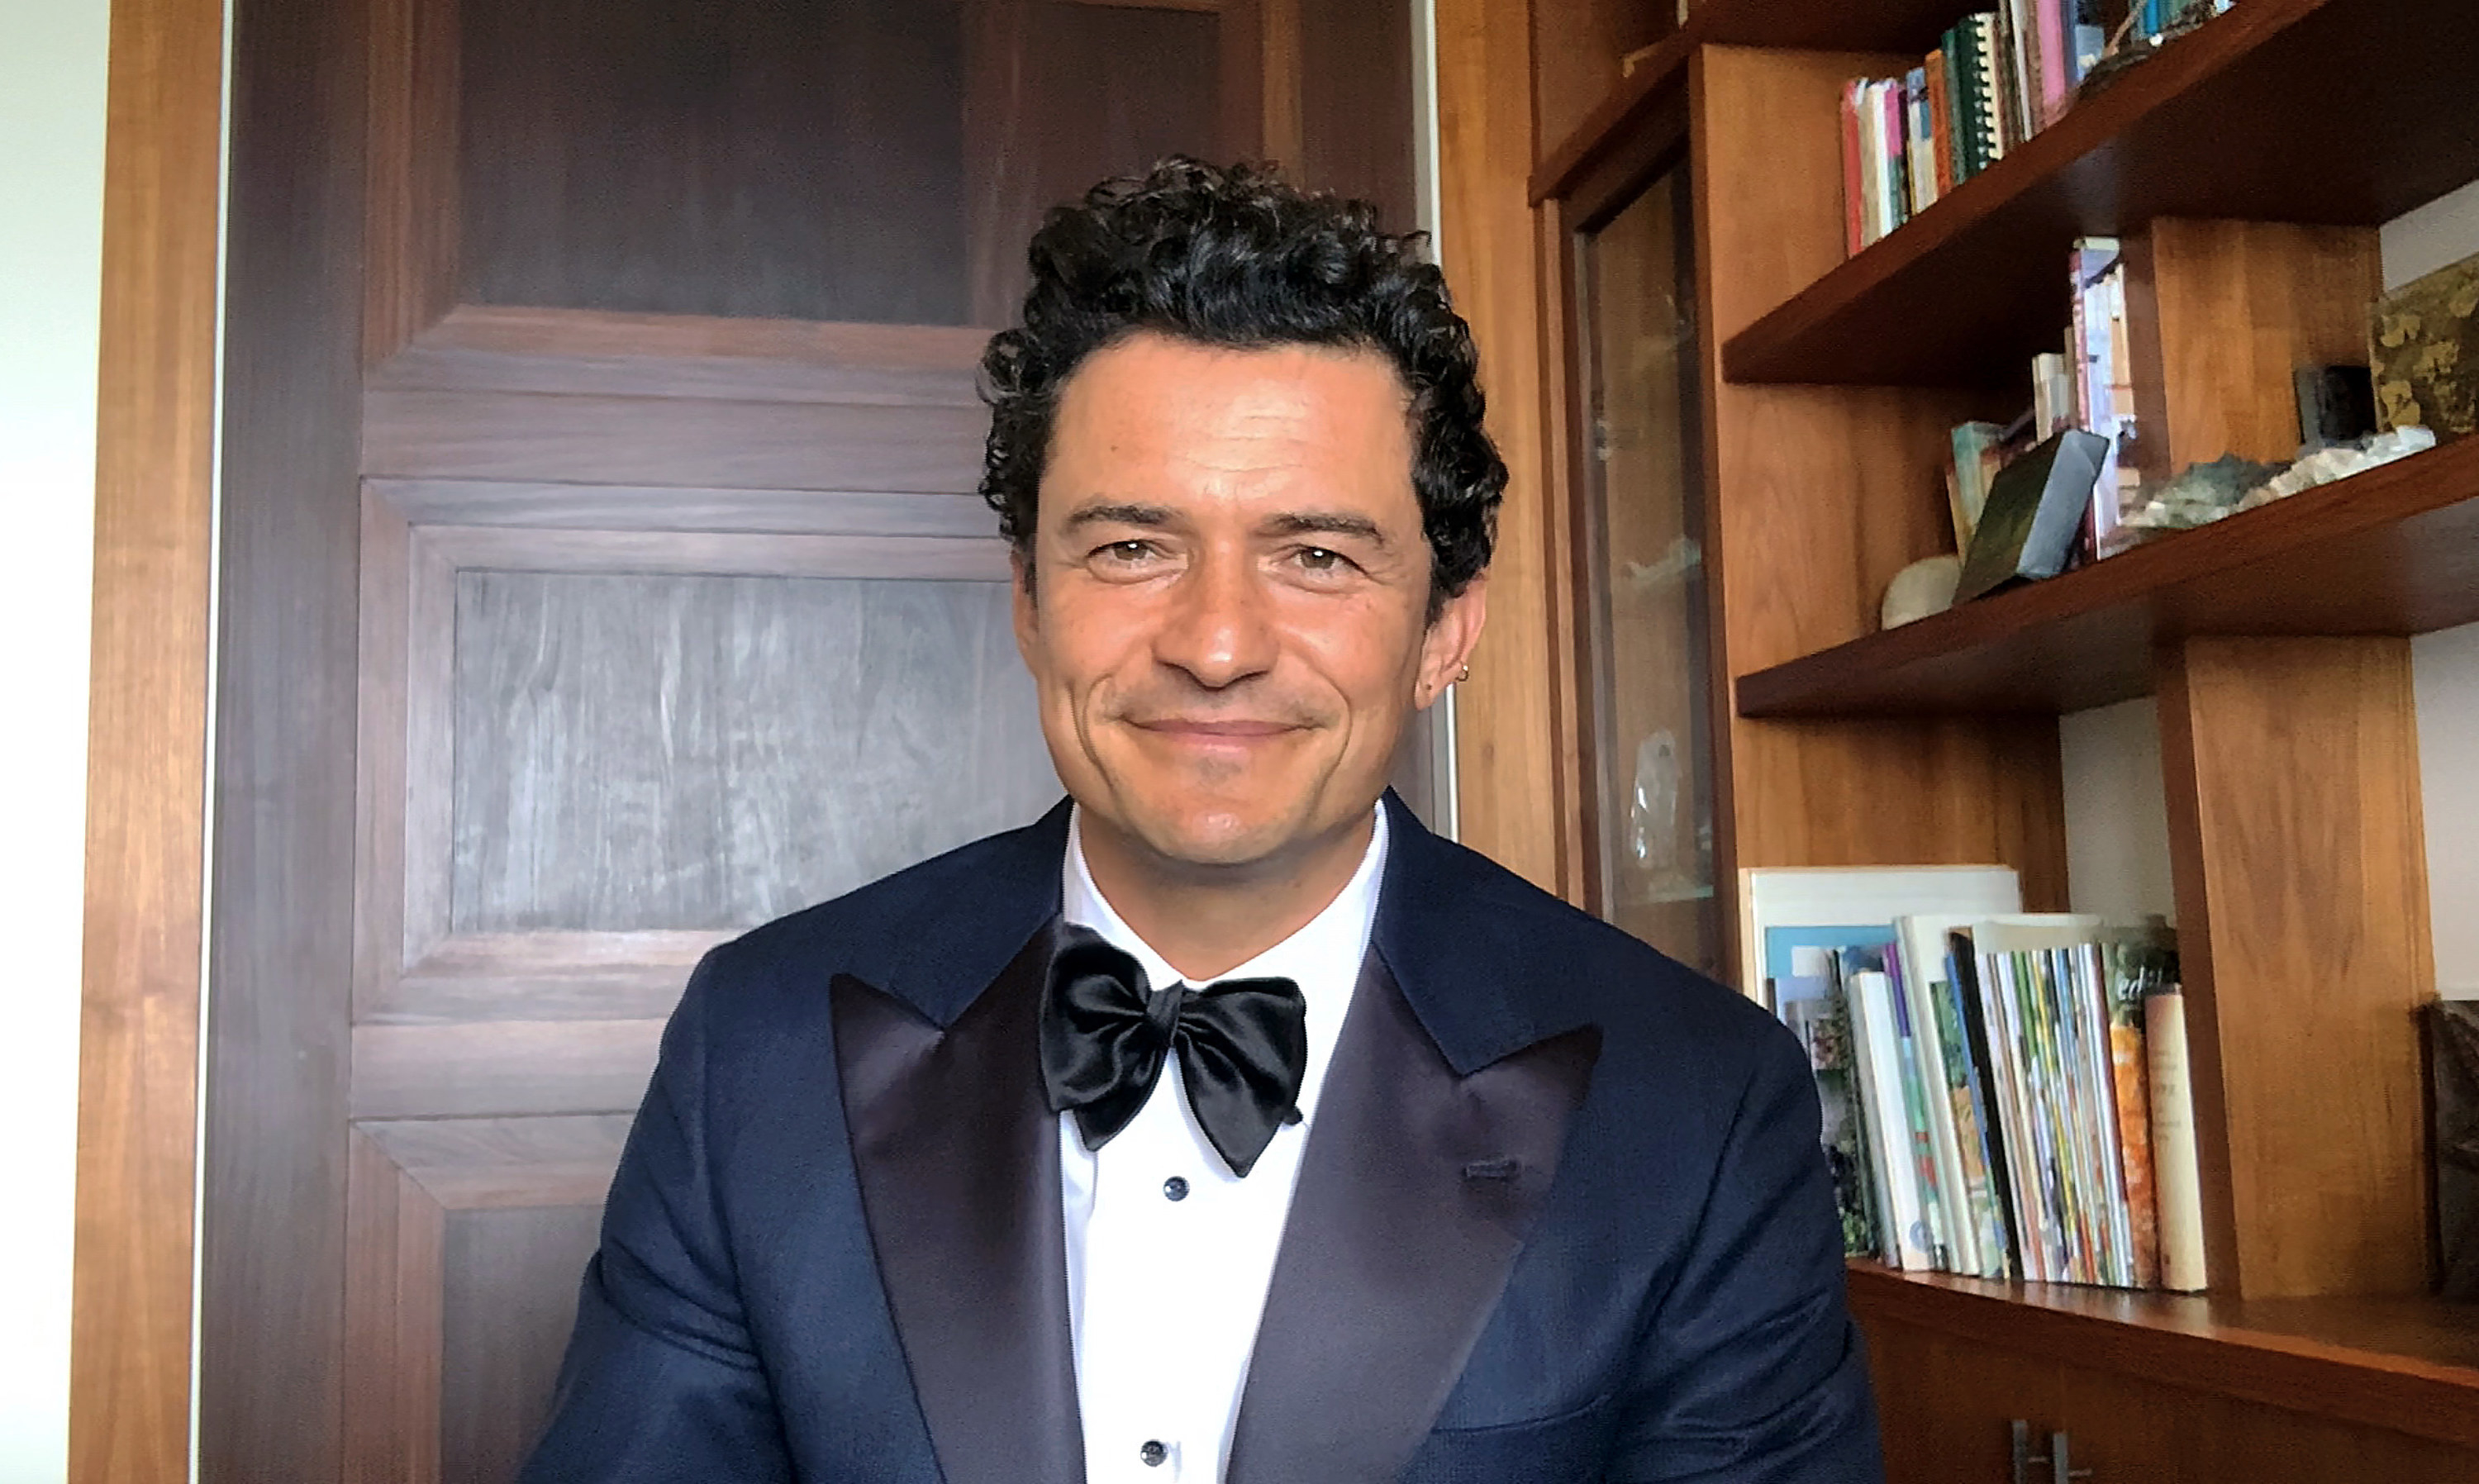 In this screengrab, Orlando Bloom speaks at the 26th Annual Critics Choice Awards on March 07, 2021